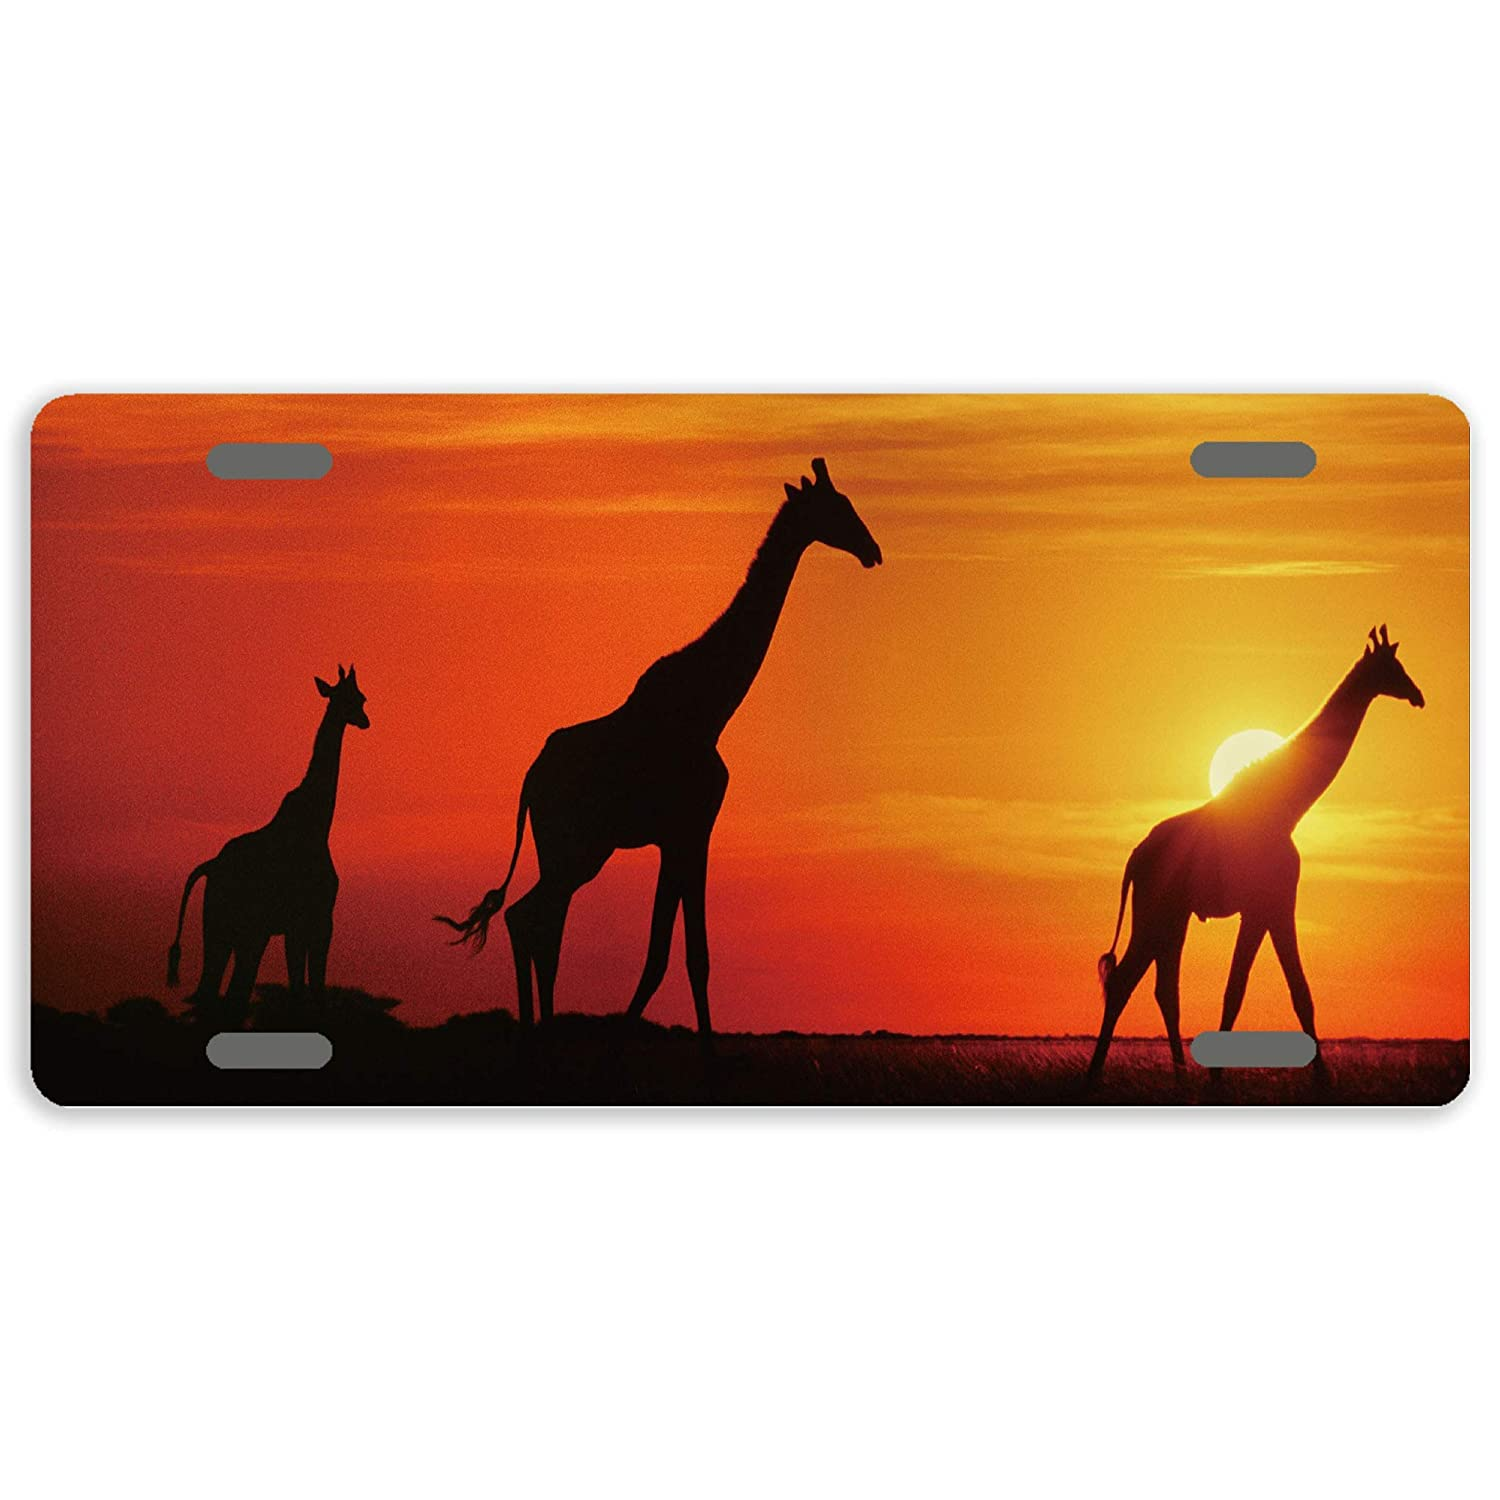 AnweiLicense Plate Cover Sunset Giraffes Decorative License Plate Cover Car Tag Sign Metal Auto Tag Novelty Front License Plate 4 Holes 12 x 6